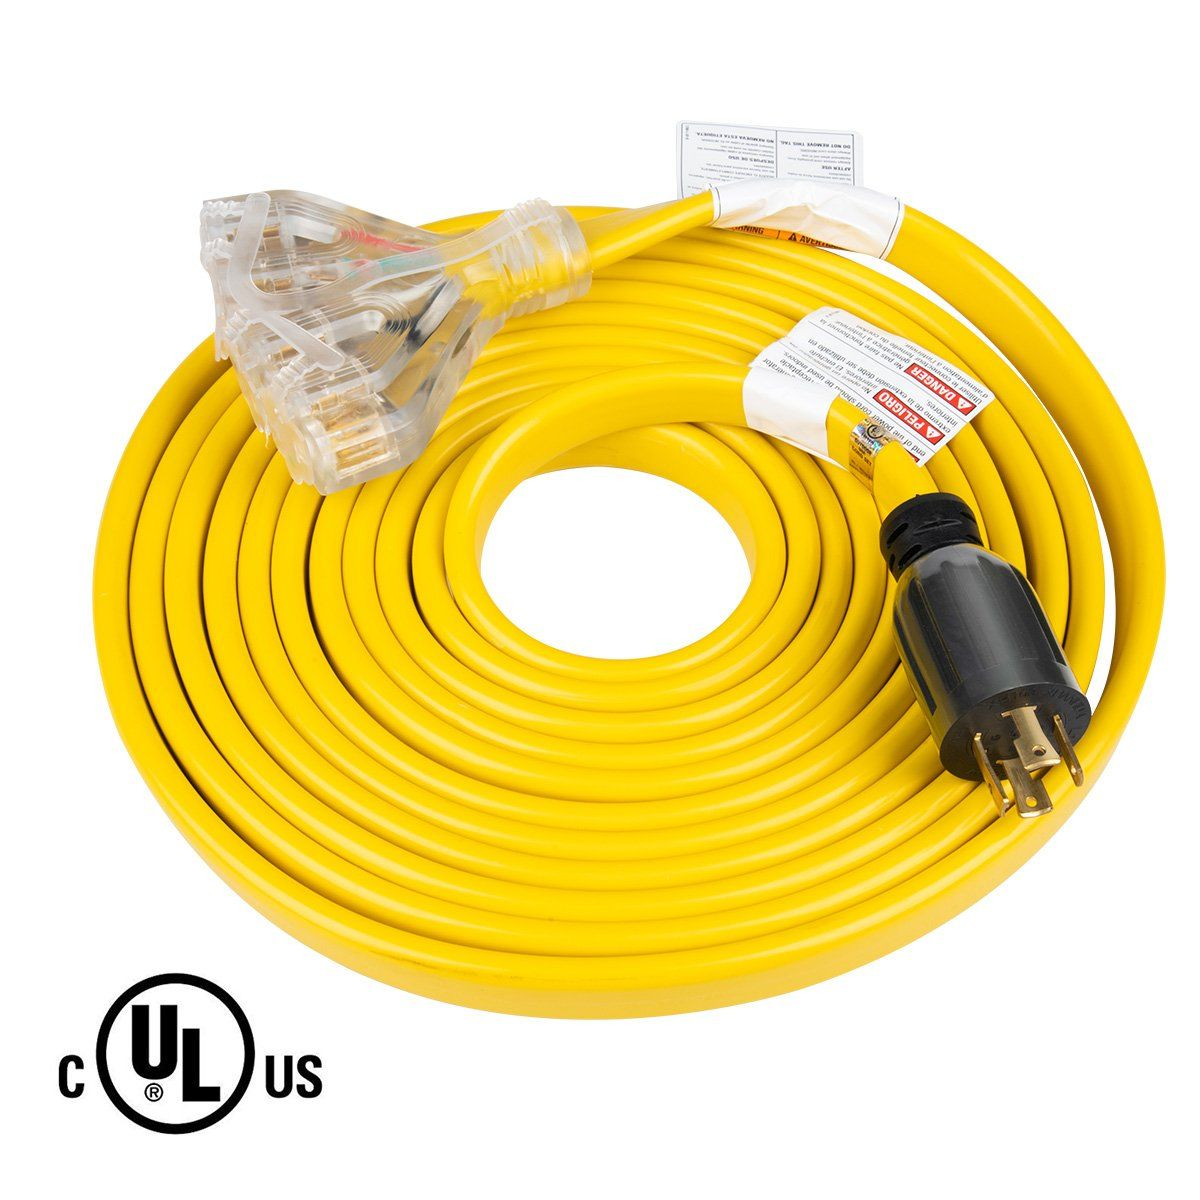 25 Feet Heavy Duty Generator Extension Cord Generator Locking Cord Nema L14 30p To Four 5 20r 4 Prong 10 Gauge New Design Flat Extension Cord Heavy Duty Ebay